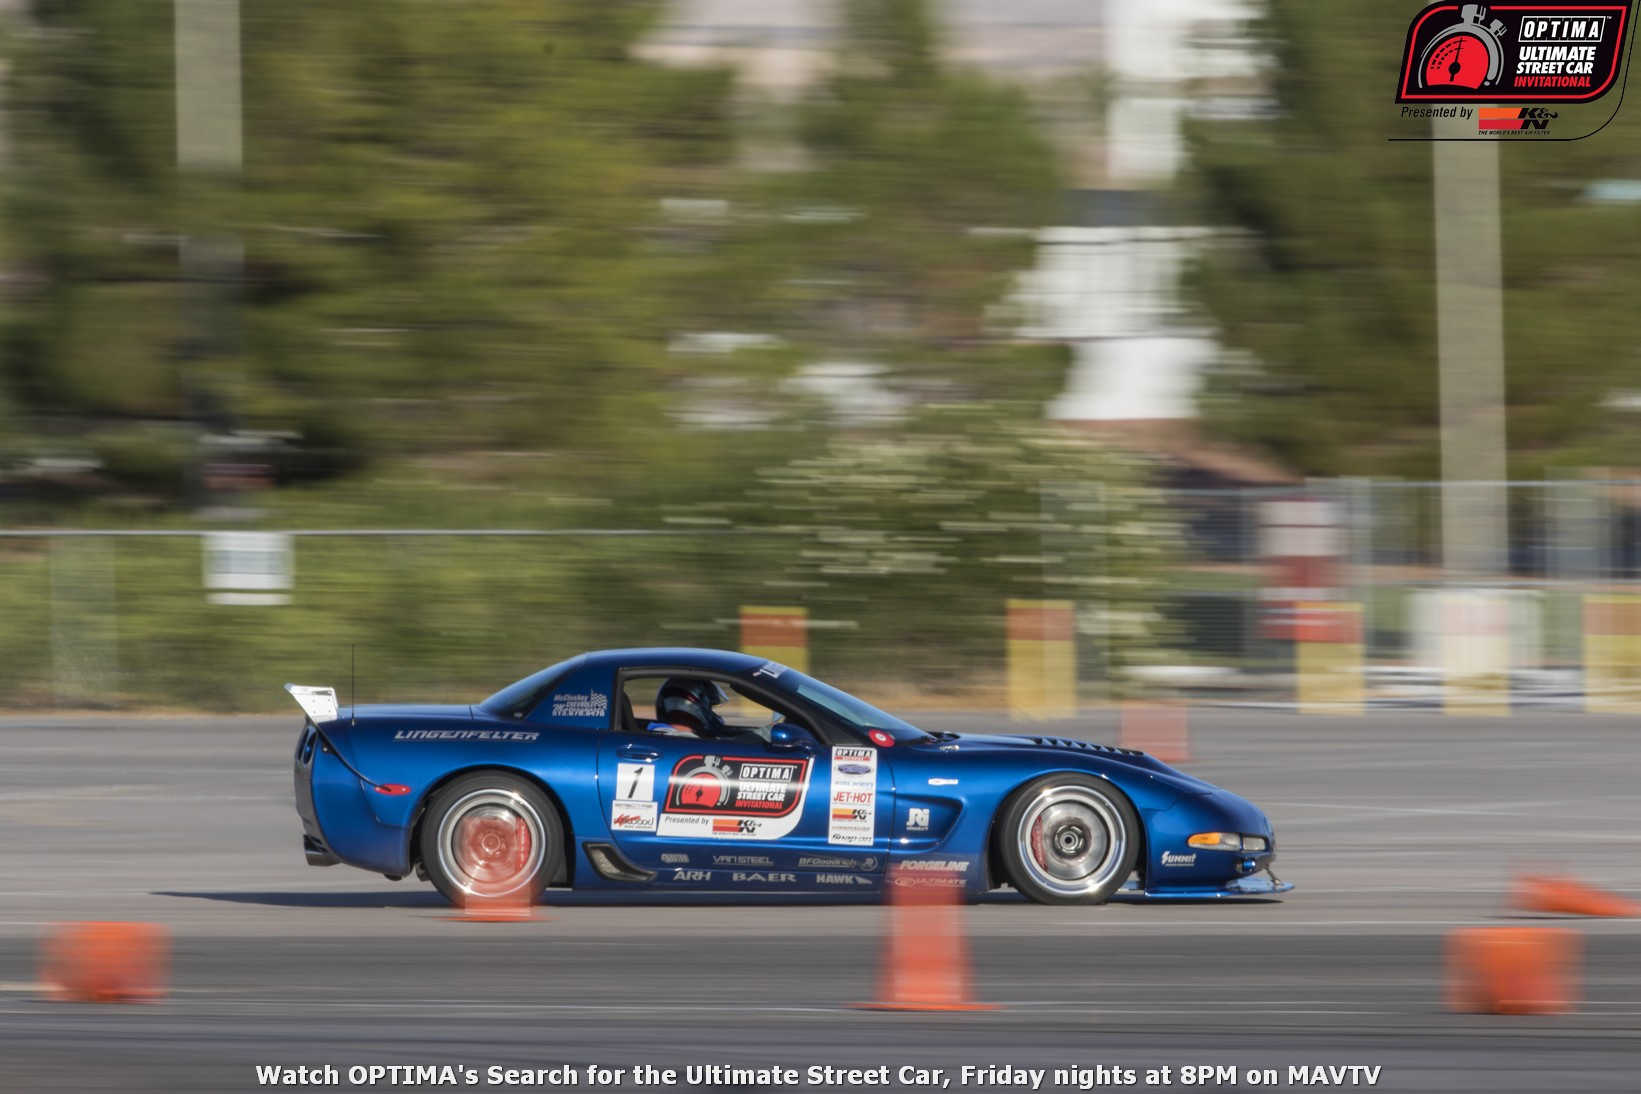 Danny-Popp-2003-Chevrolet-Corvette-Detroit-Speed-Autocross-2015-OUSCI_86.jpg